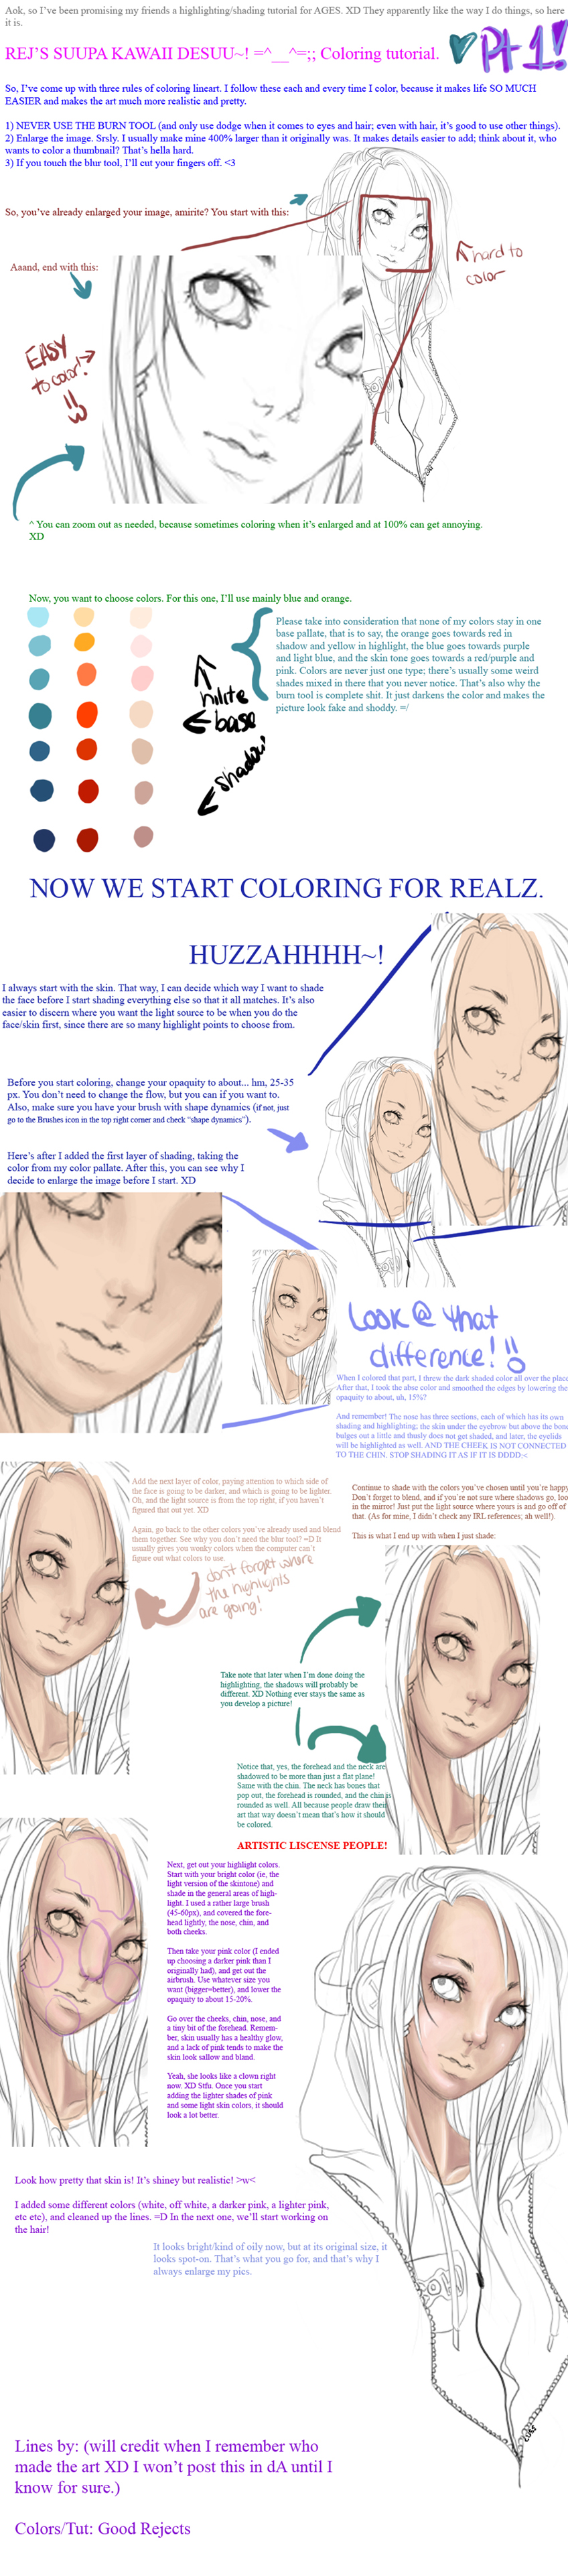 Coloring Tutorial Part 1: Skin by GoodRejects